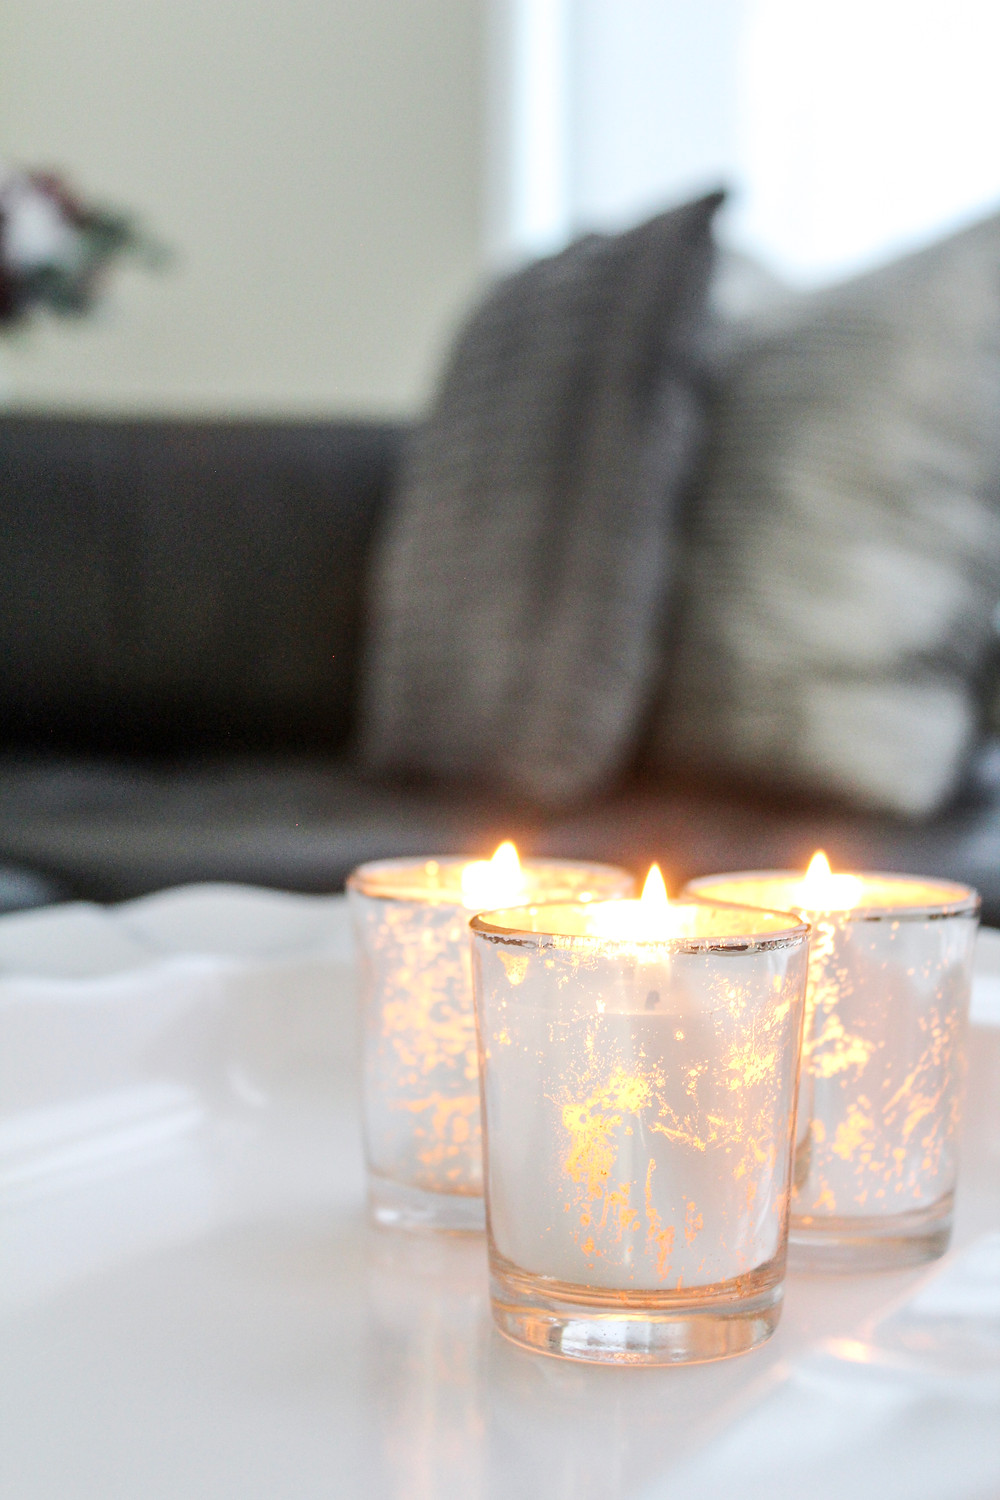 7 Easy Ways to Decorate Your Home After the Holidays! #homedecor #thehomeedit #homedecorideas